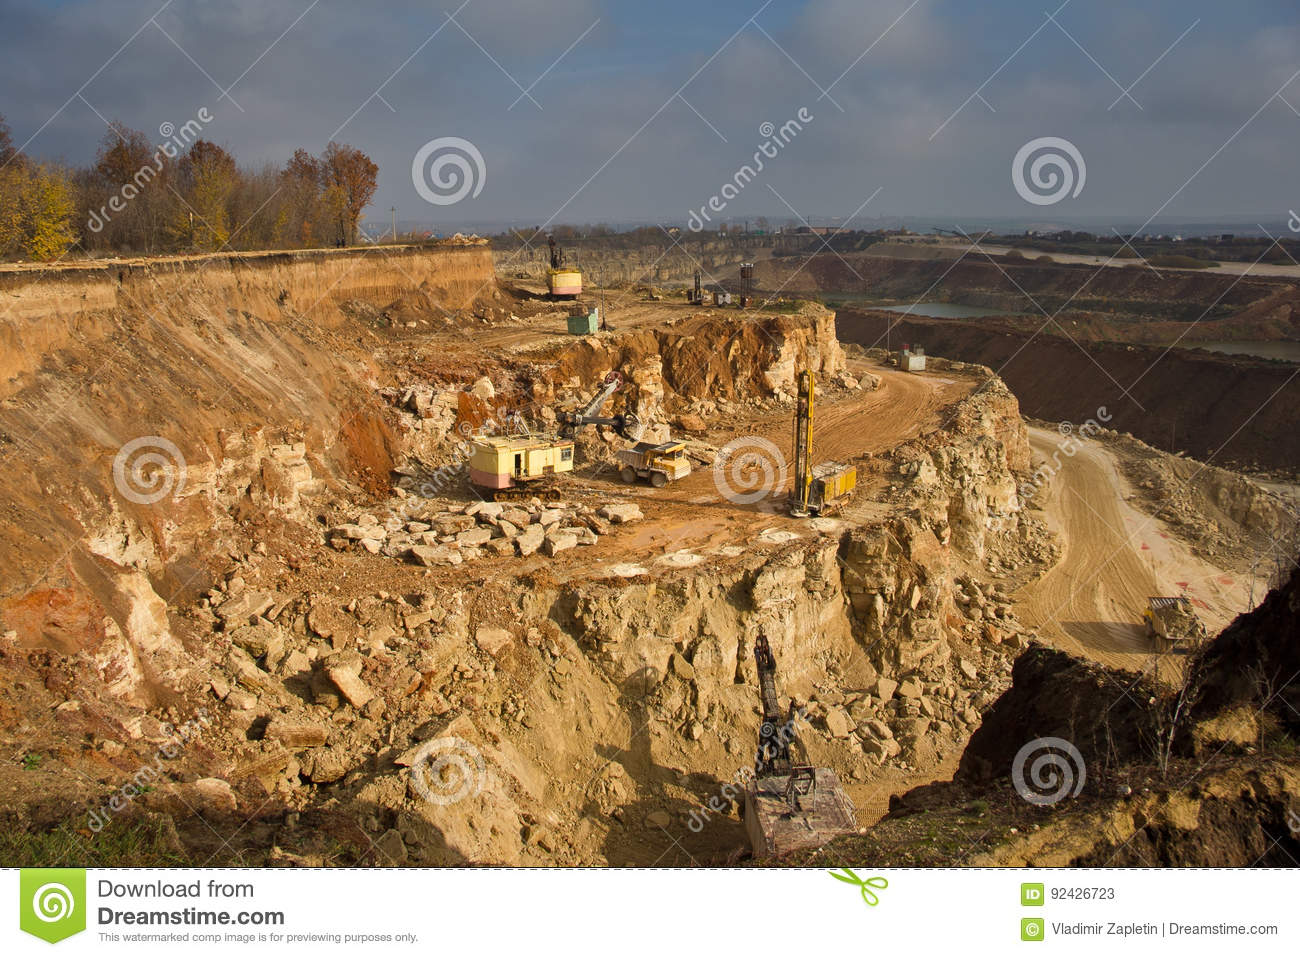 Work On Limestone Mining In A Quarry Stock Image - Image of